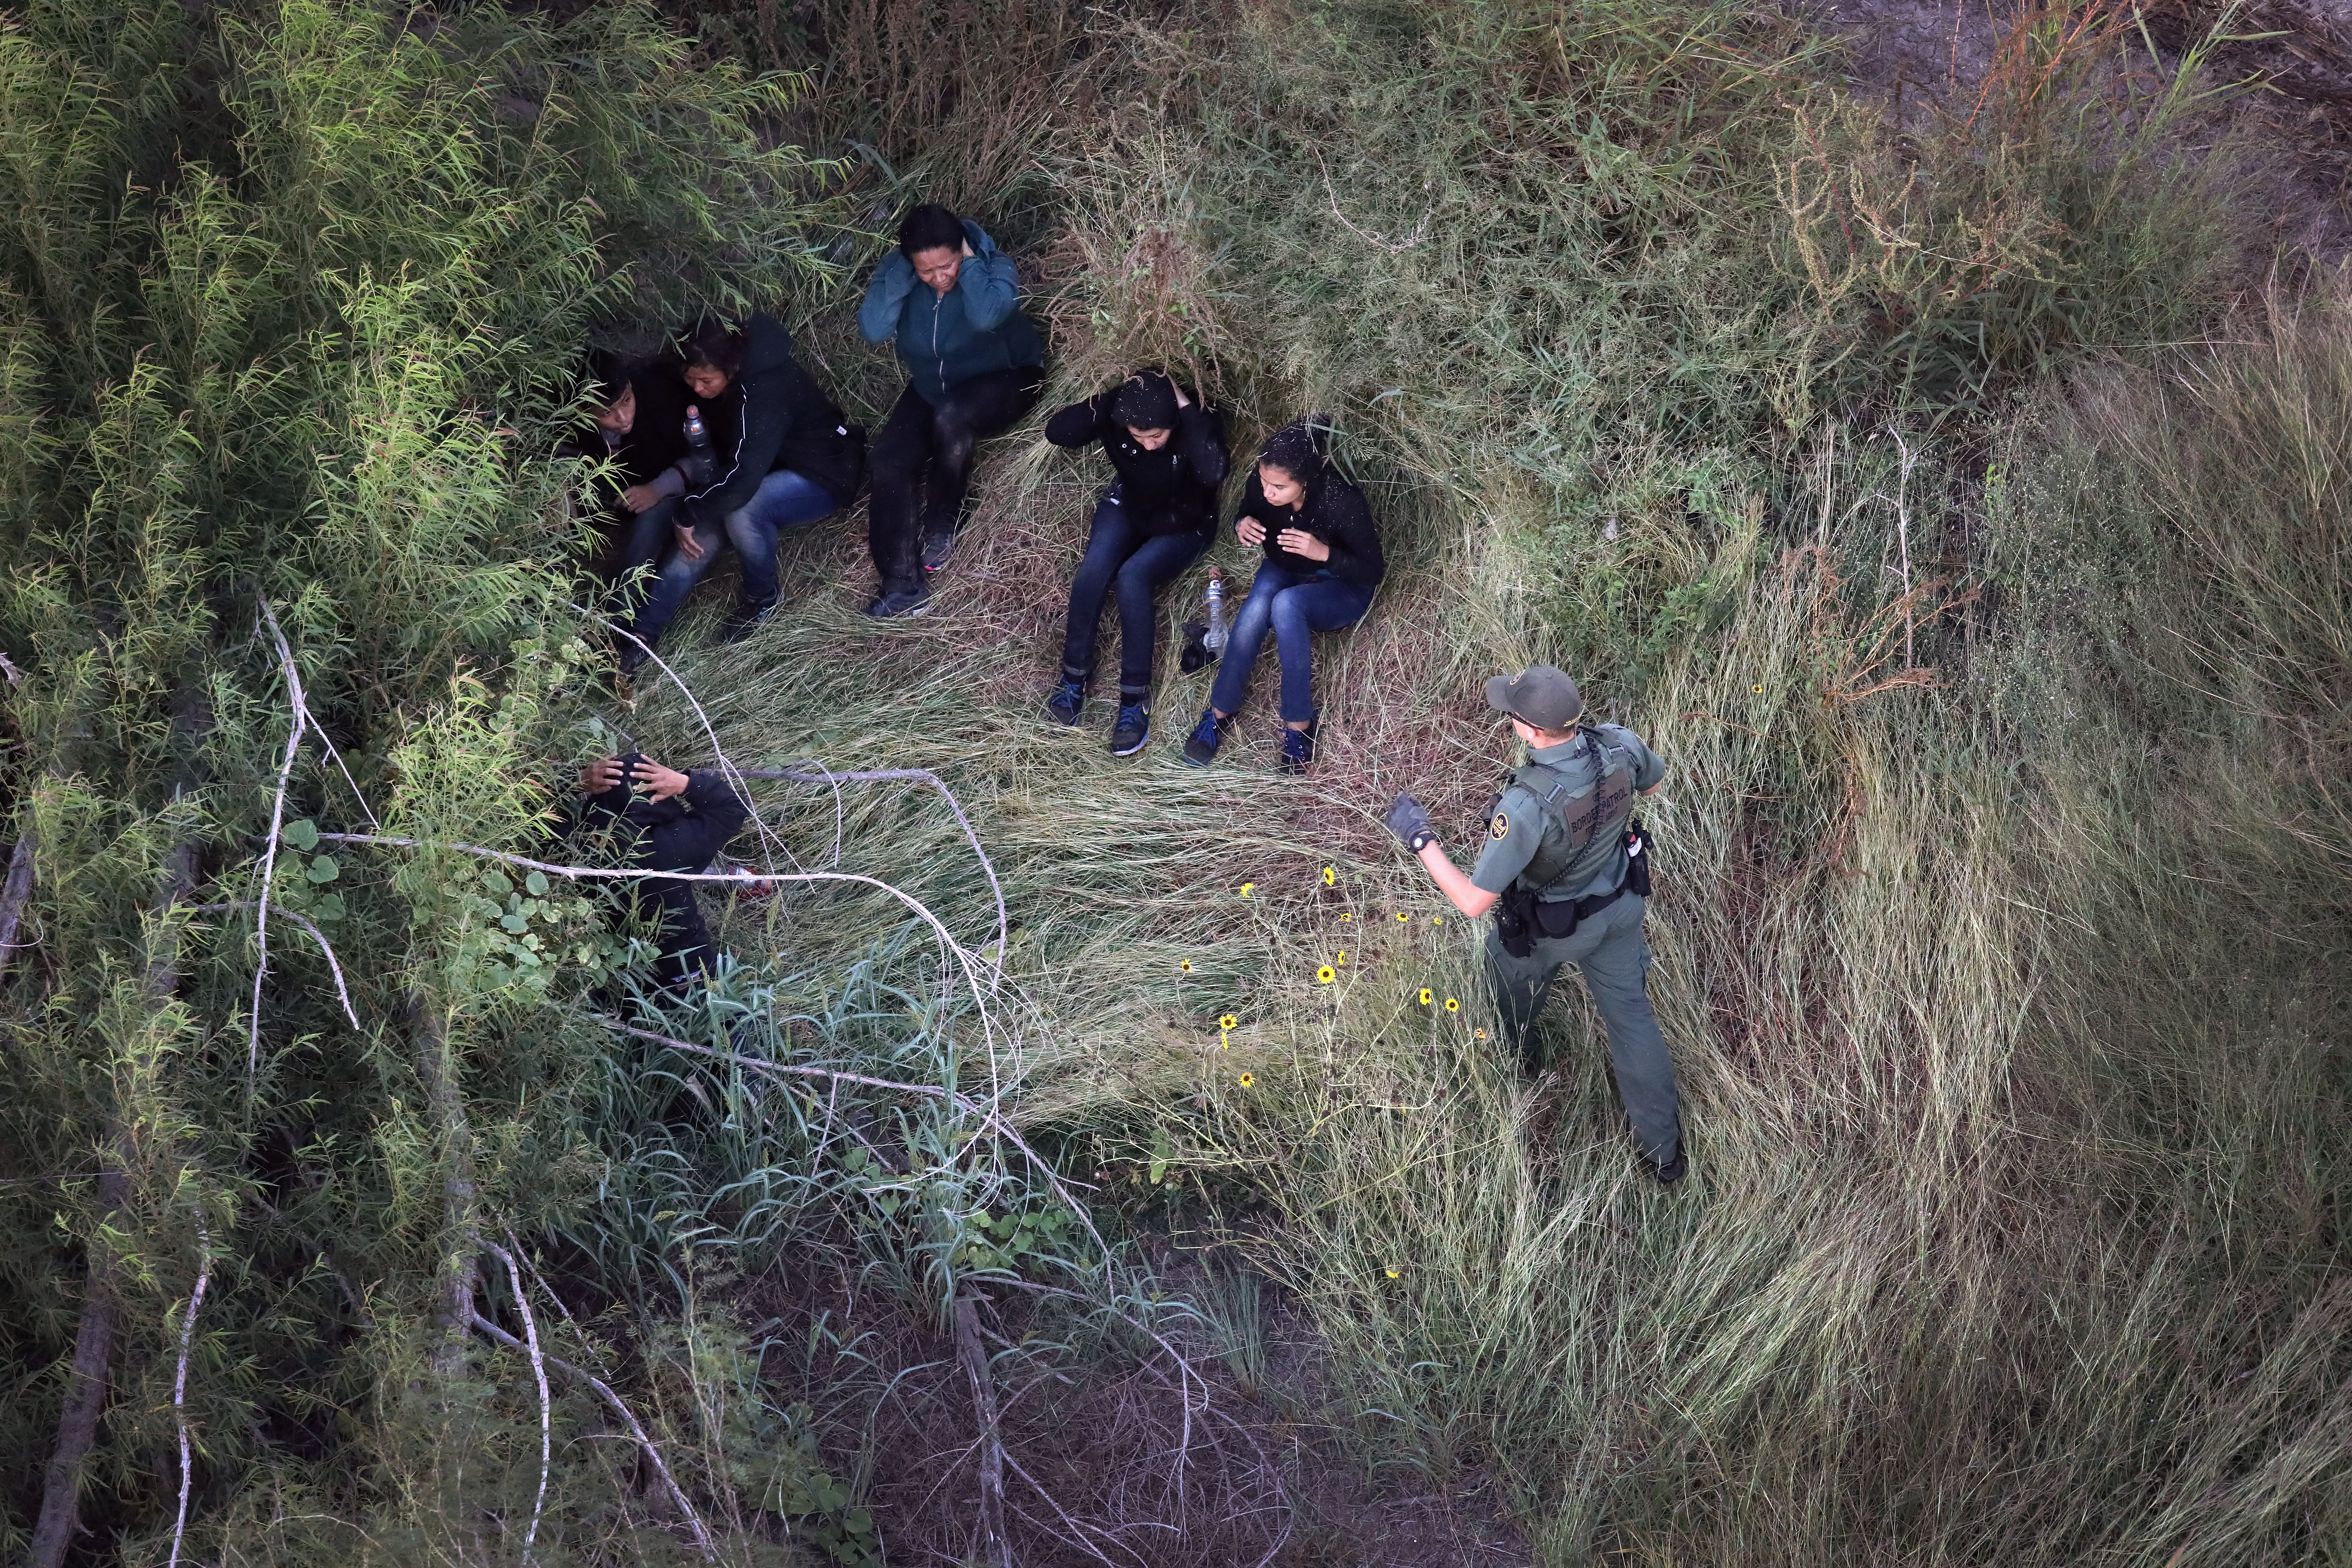 A U.S. Border Patrol agent detains a group of undocumented immigrants on Oct. 18, 2016 near McAllen, Texas.